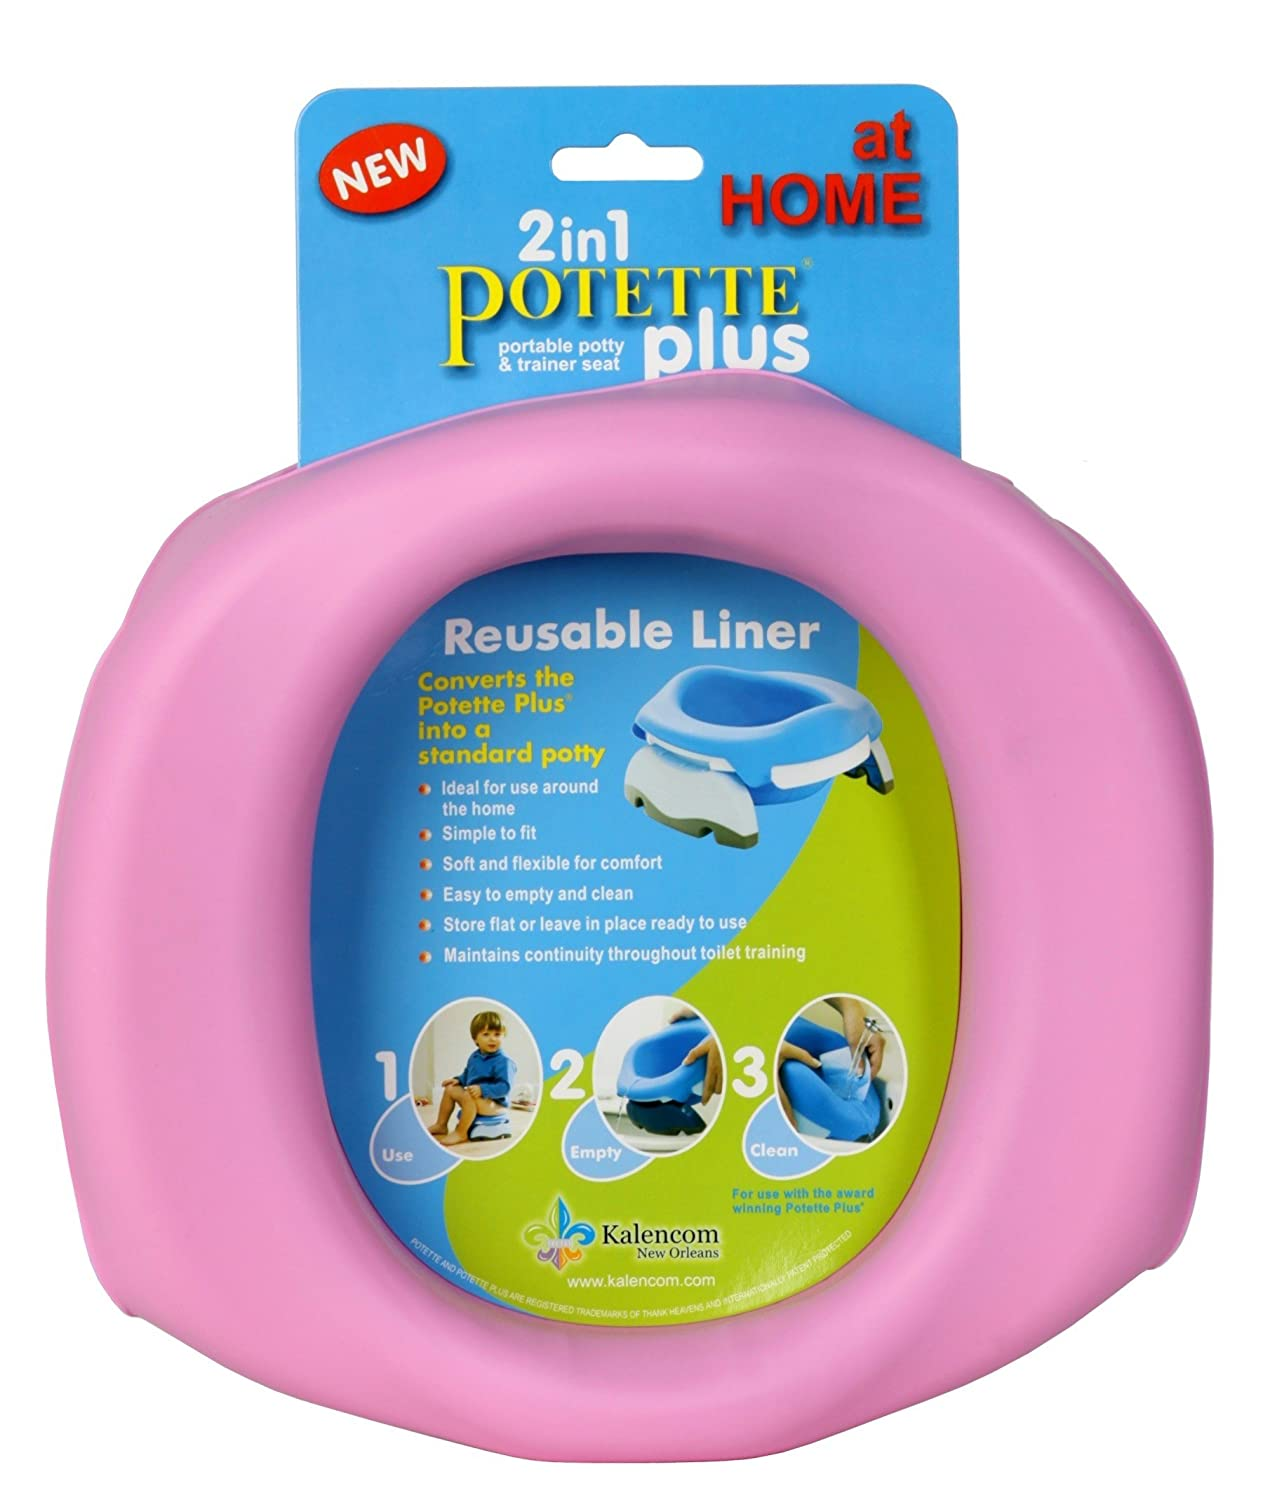 Kalencom Potette Plus At Home Reusable Liners, Pink (Discontinued by Manufacturer) 2734Pink